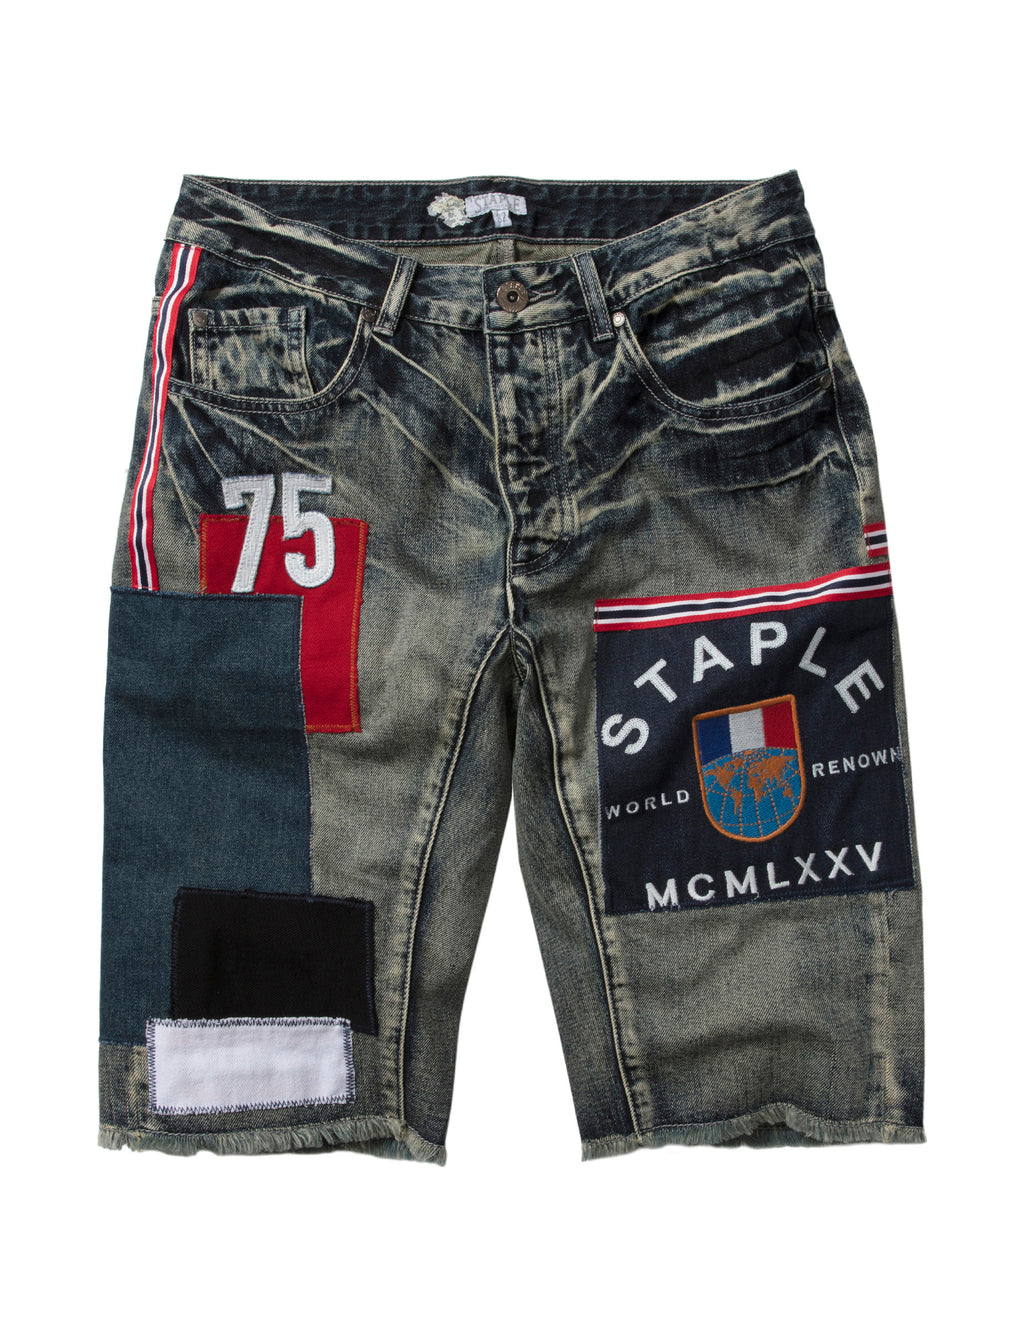 World Tour Denim Short - Shorts | Staple Pigeon